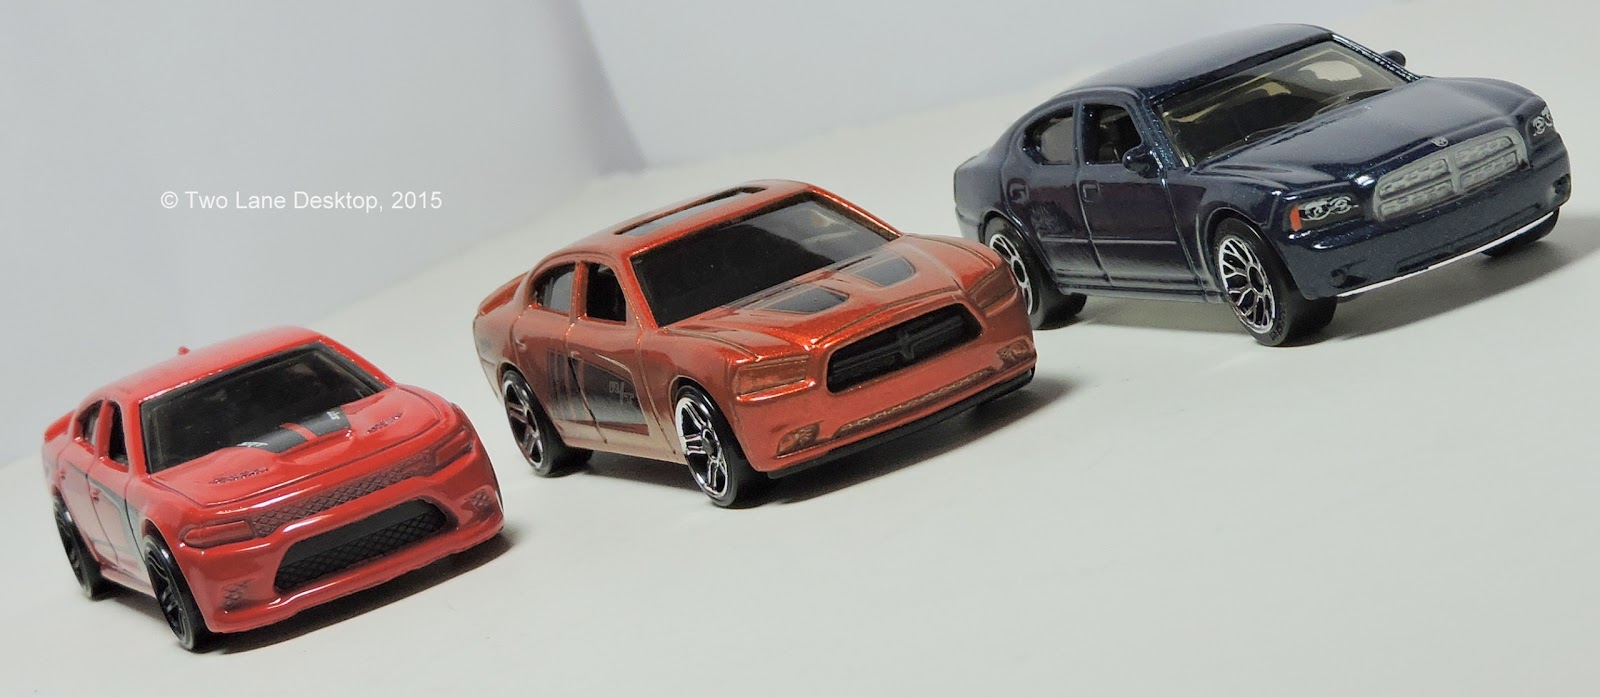 MOPAR Mania, Part 3: Hot Wheels 2015 Dodge Charger SRT Hellcat, Alongside  Hot Wheels 2011 Charger R/T And Matchbox 2006 And 2011 Charger R/T Police